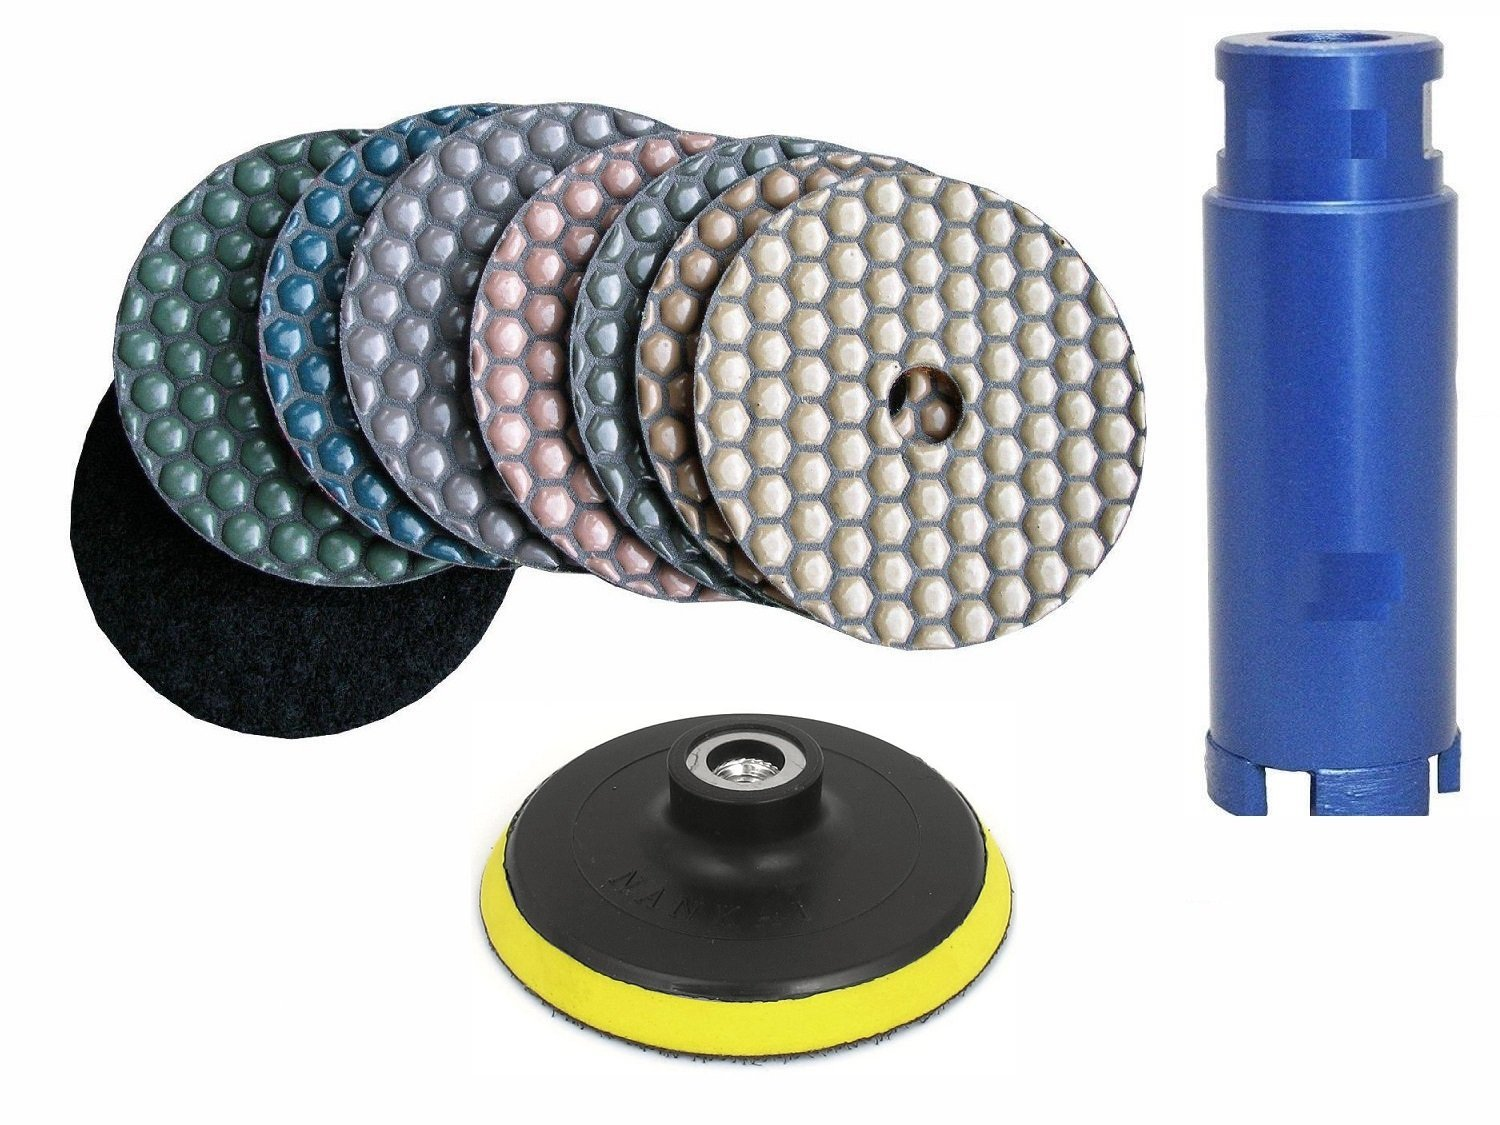 "Diamond Polishing Pad 4"" Dry 9+1 Pieces 1 1/4"" 32mm Diamond Core Drill Bit Hole Saw Granite Concrete Marble Travertine Terrazzo sink hole cutout"